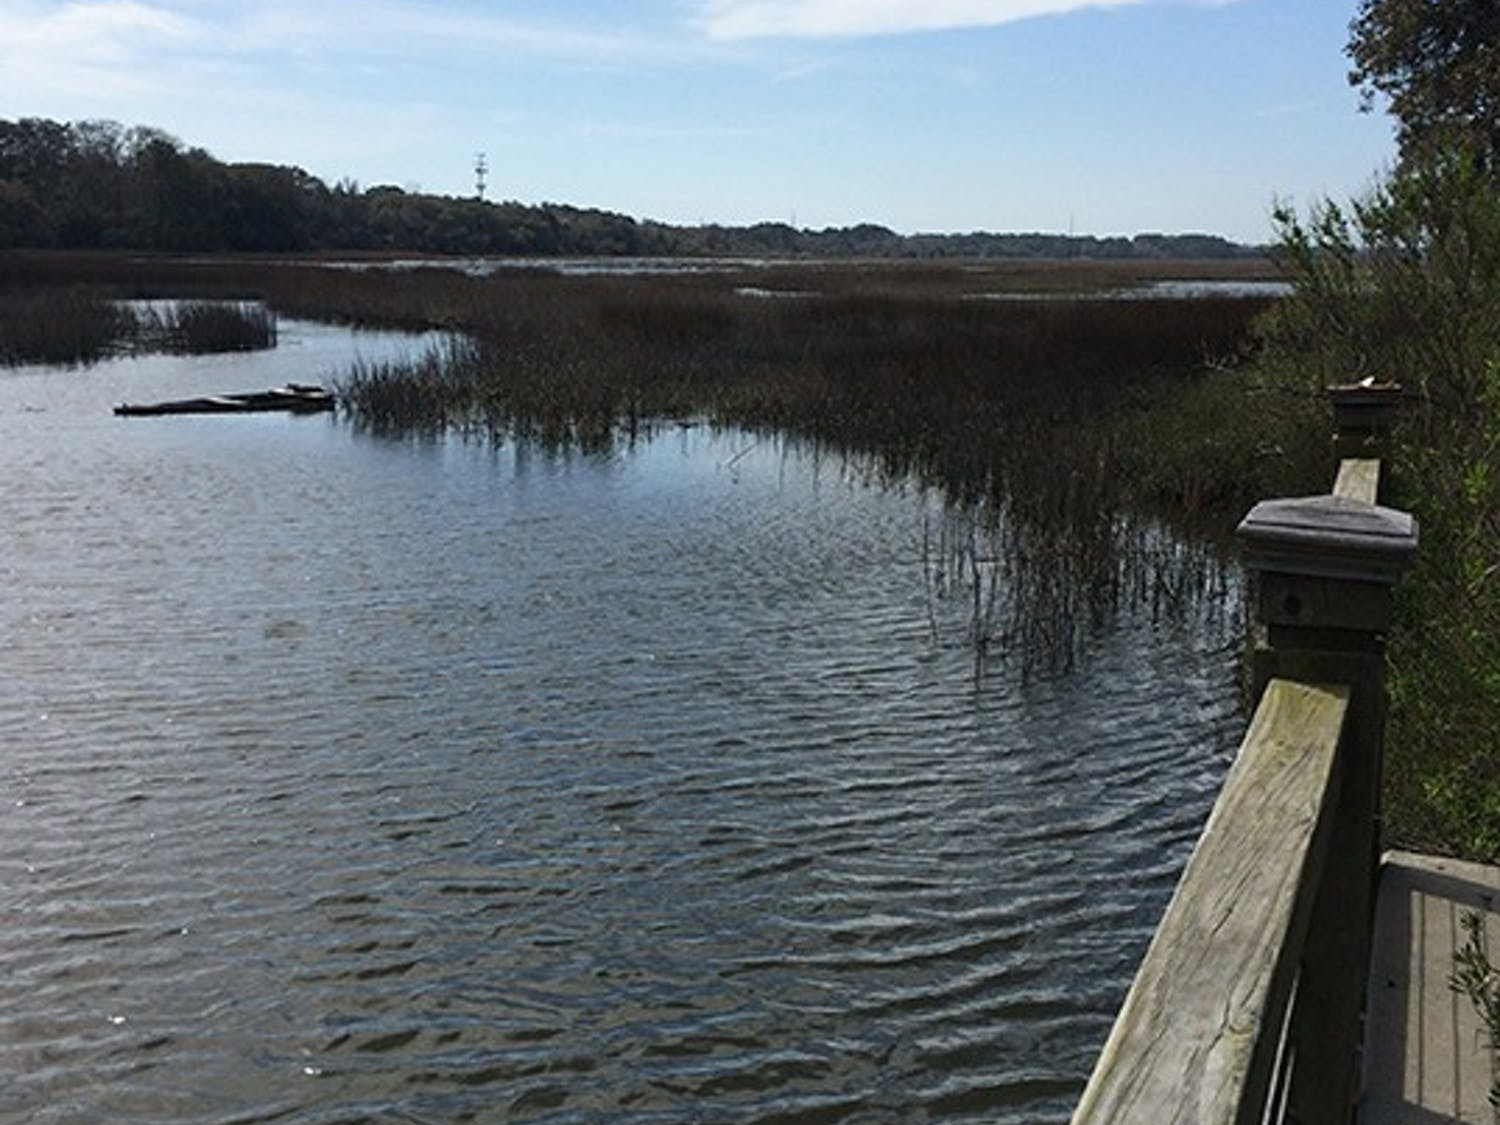 Hilton Head Island is the perfect small beach getaway from the stresses of everyday life.